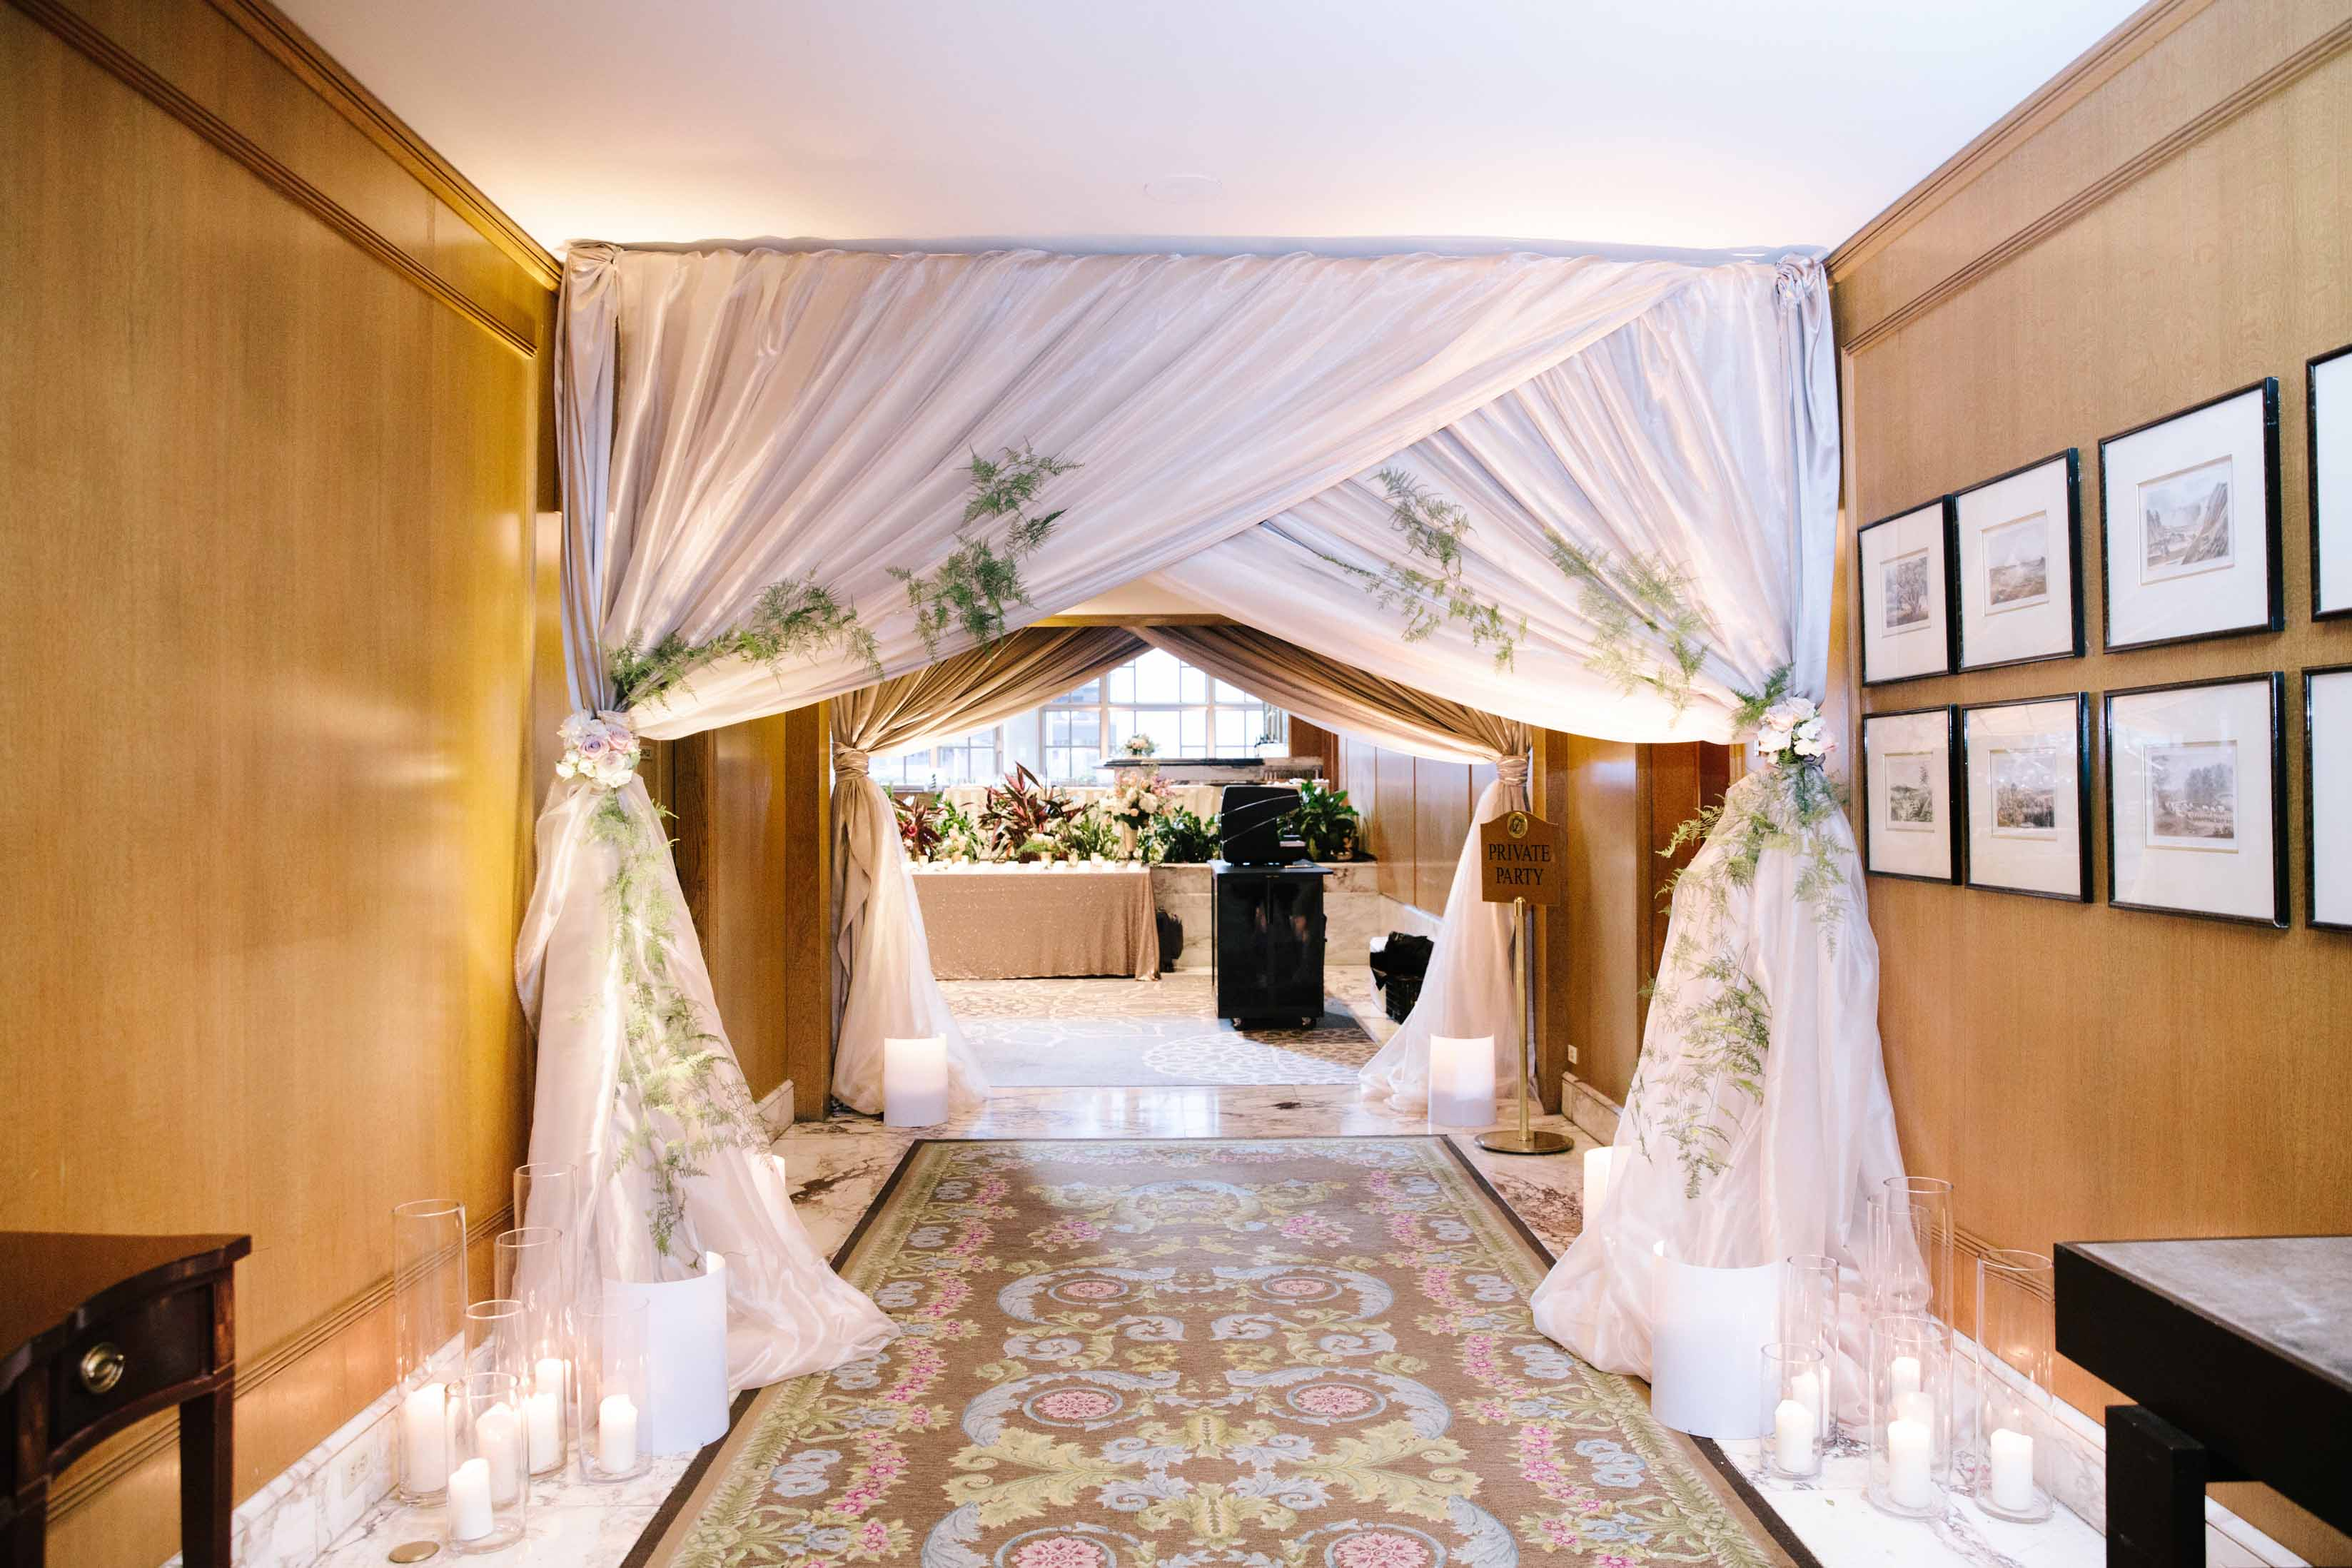 Elegant draped archway with vinces and candles, leading into wedding reception